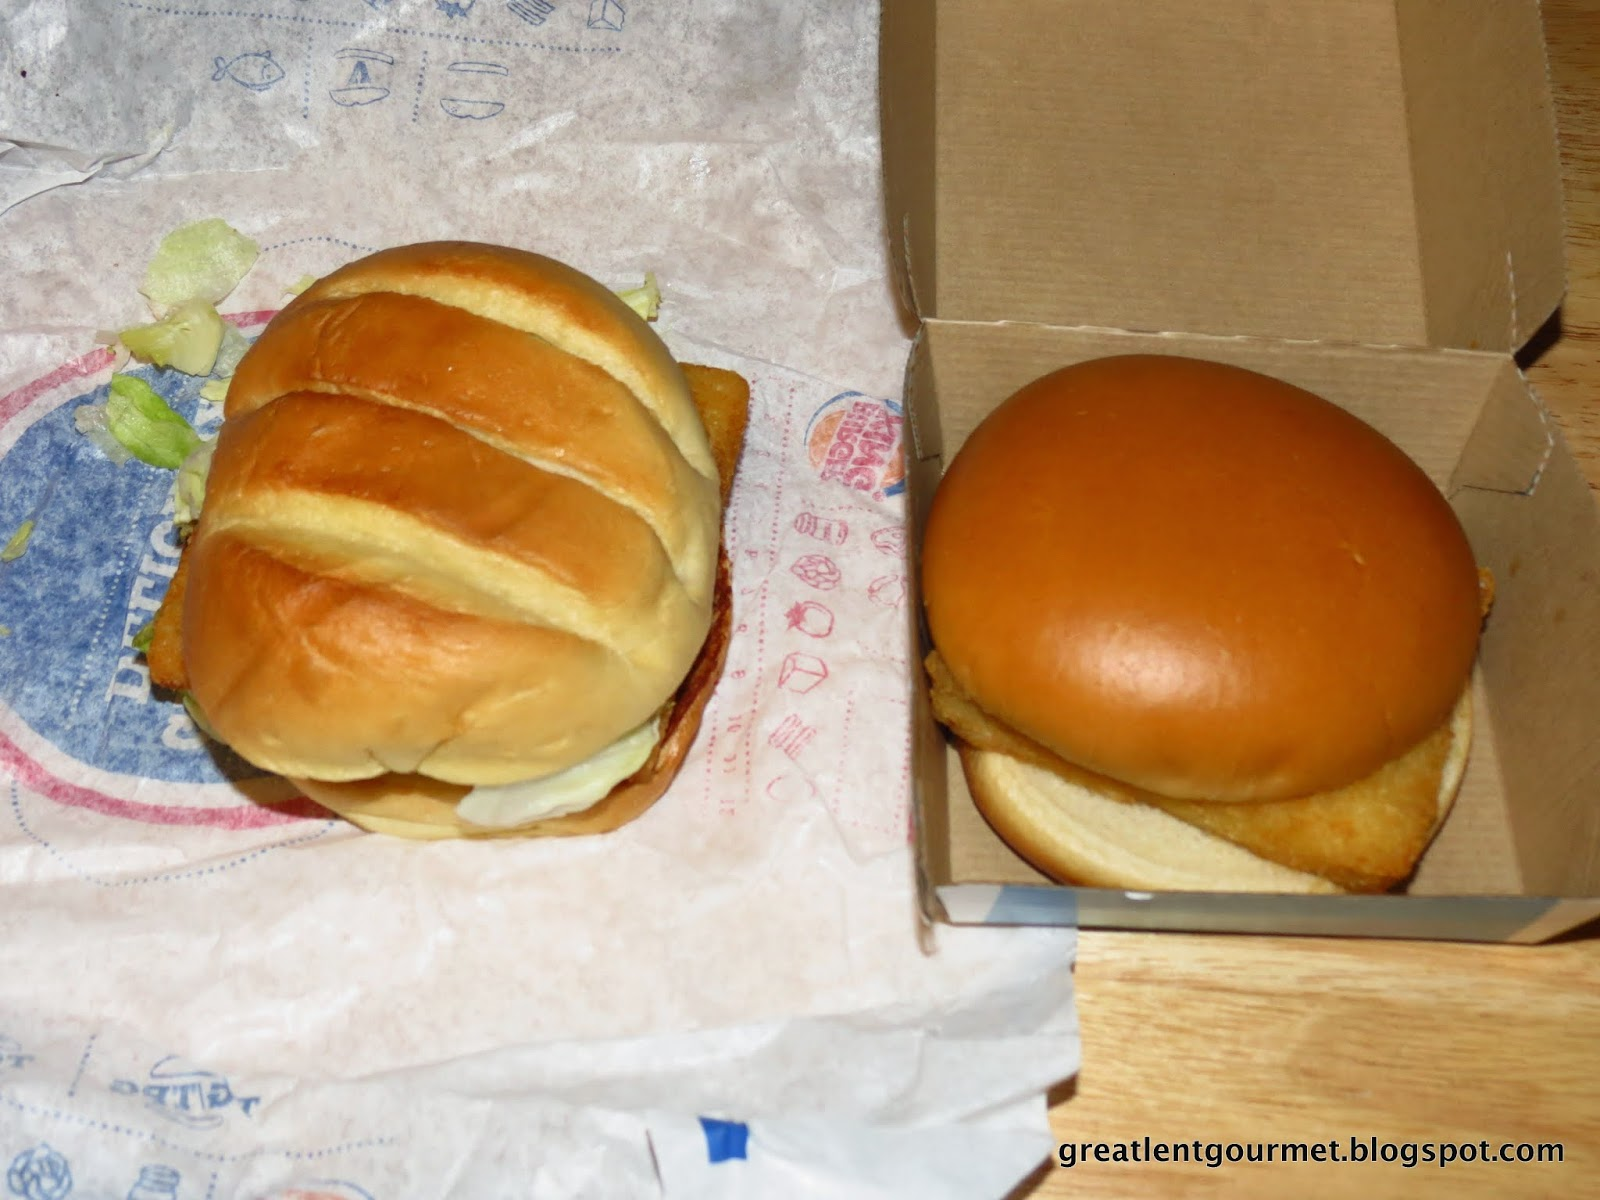 What are the differences between mcdonalds and burger king?